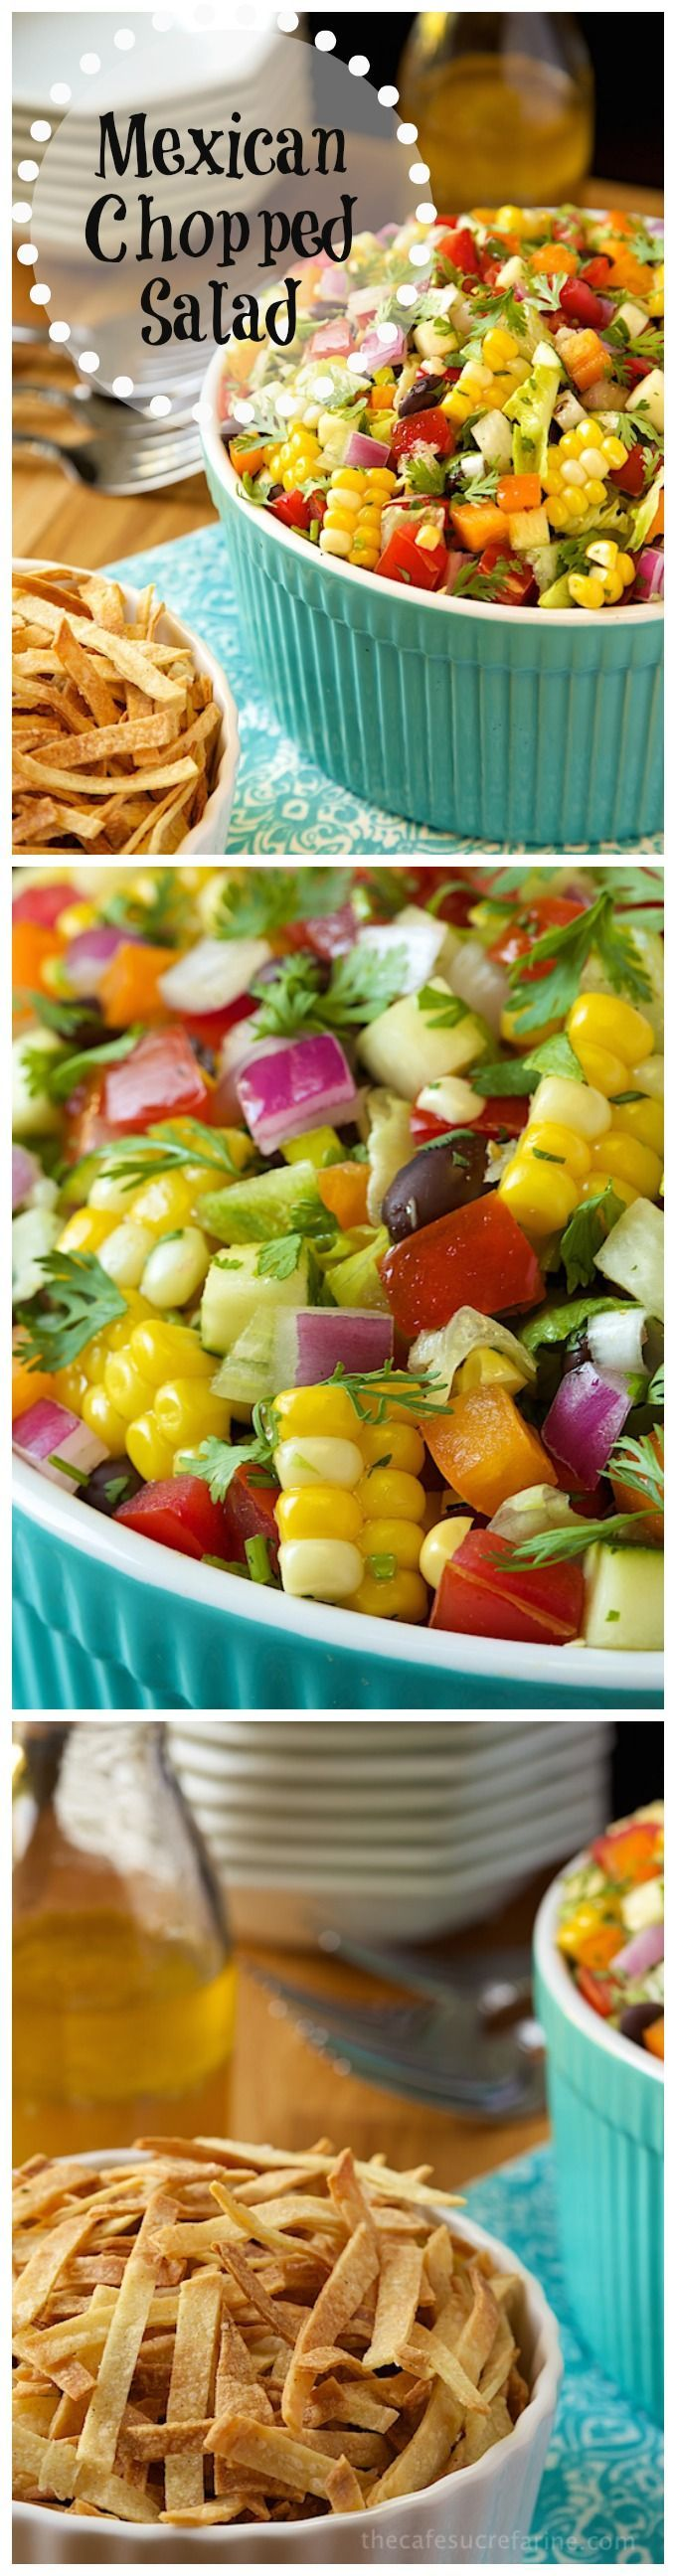 wedding rings silver   Mexican Chopped Salad The freshest healthiest most summery salad with lots of Southwestern flair